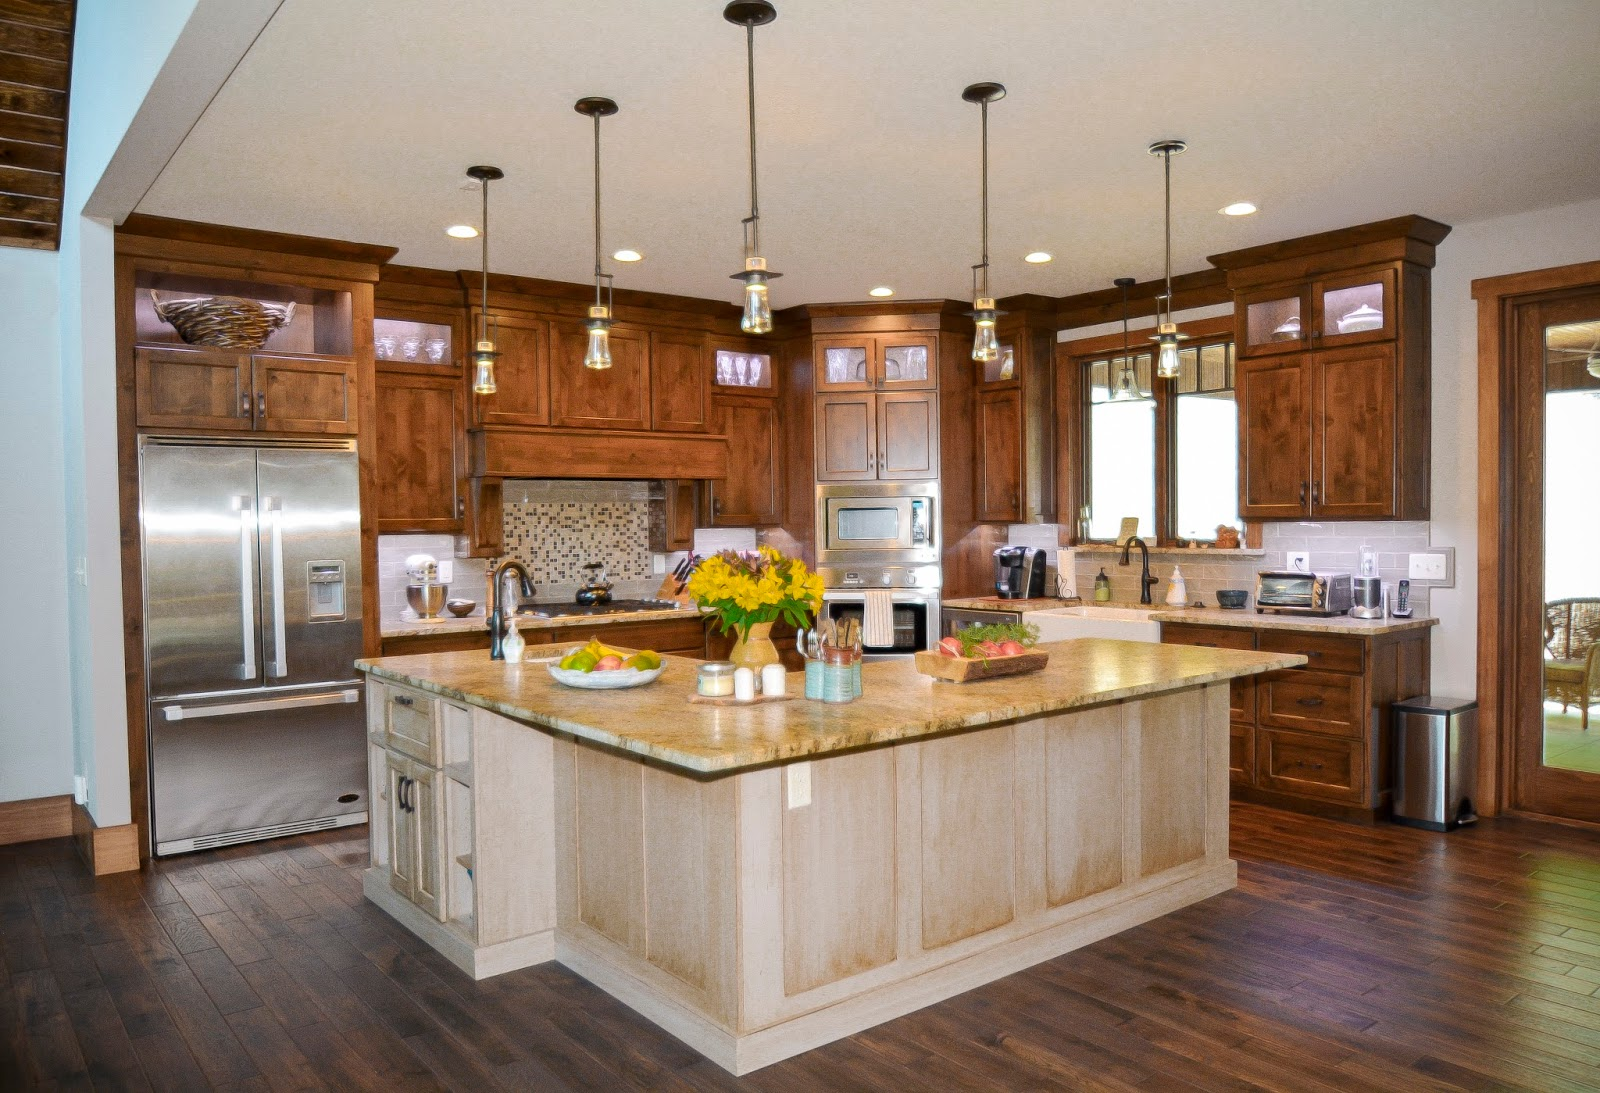 Kustom home design for In home kitchen design